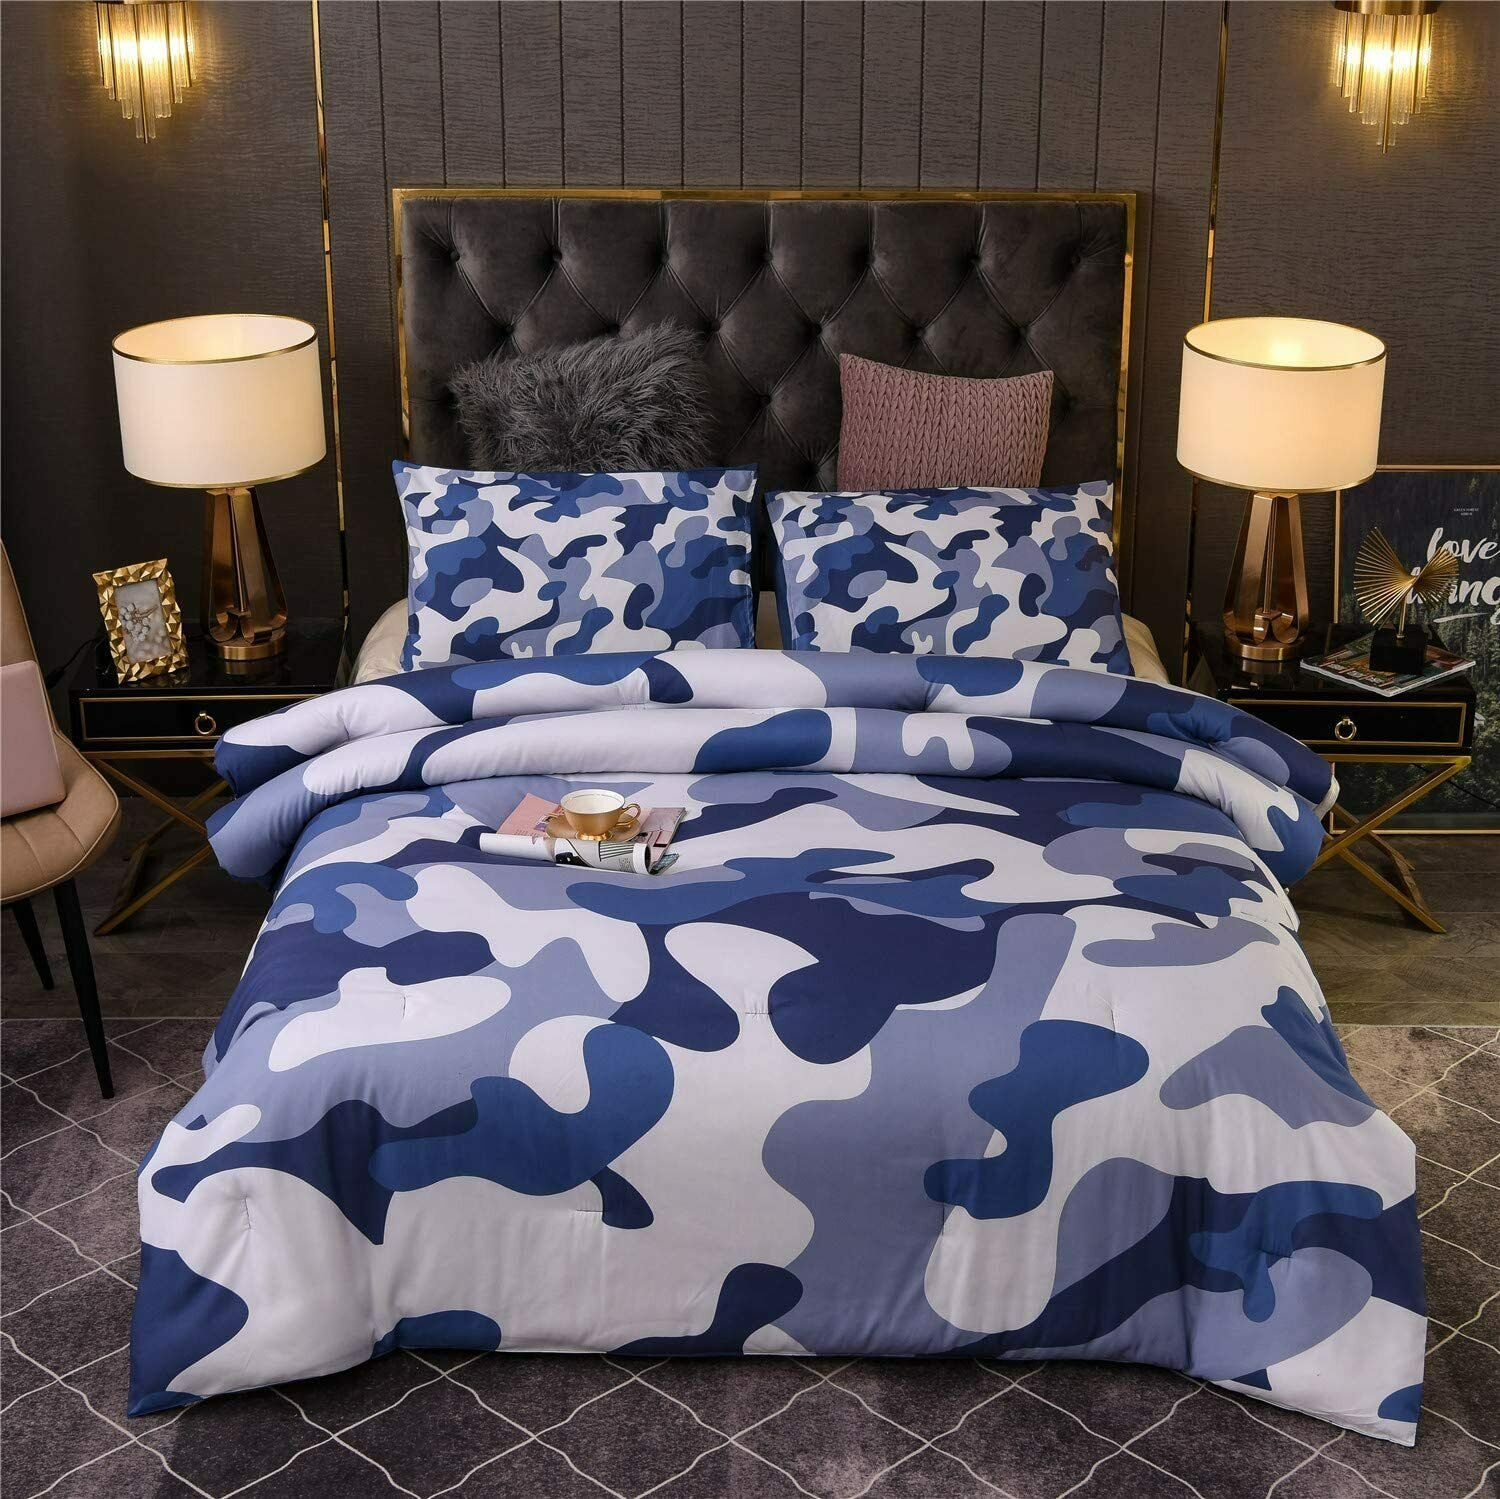 Boys Blue Camo 4 Pc Comforter Set Full Queen Polyester Camoflauge Teen Bedding For Sale Online Ebay